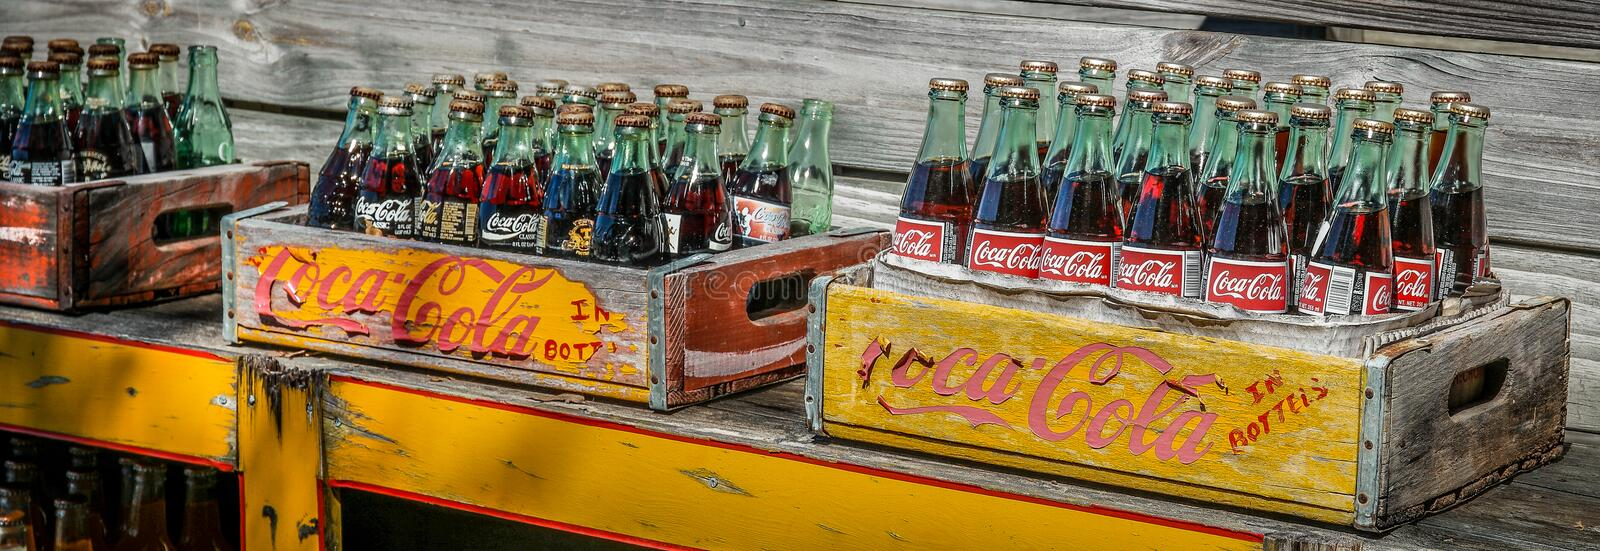 Vintage Coca Cola bottles stock photography